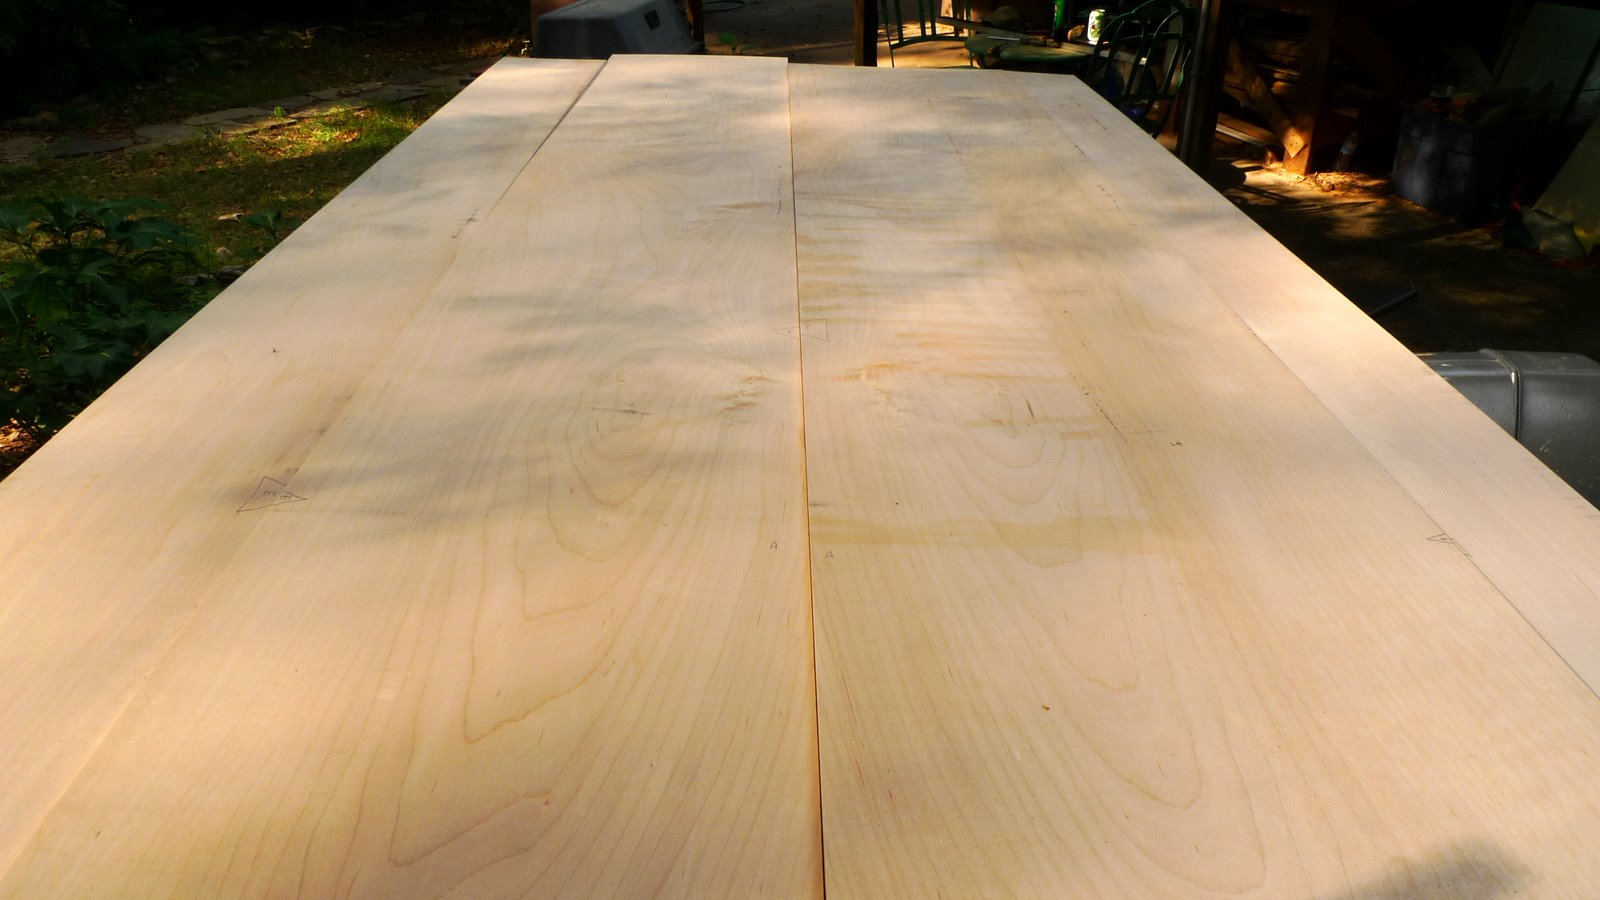 Butt Joints And Pocket Holes: Maple Dining Room Table   Top, Chamfers,  Crosscuts